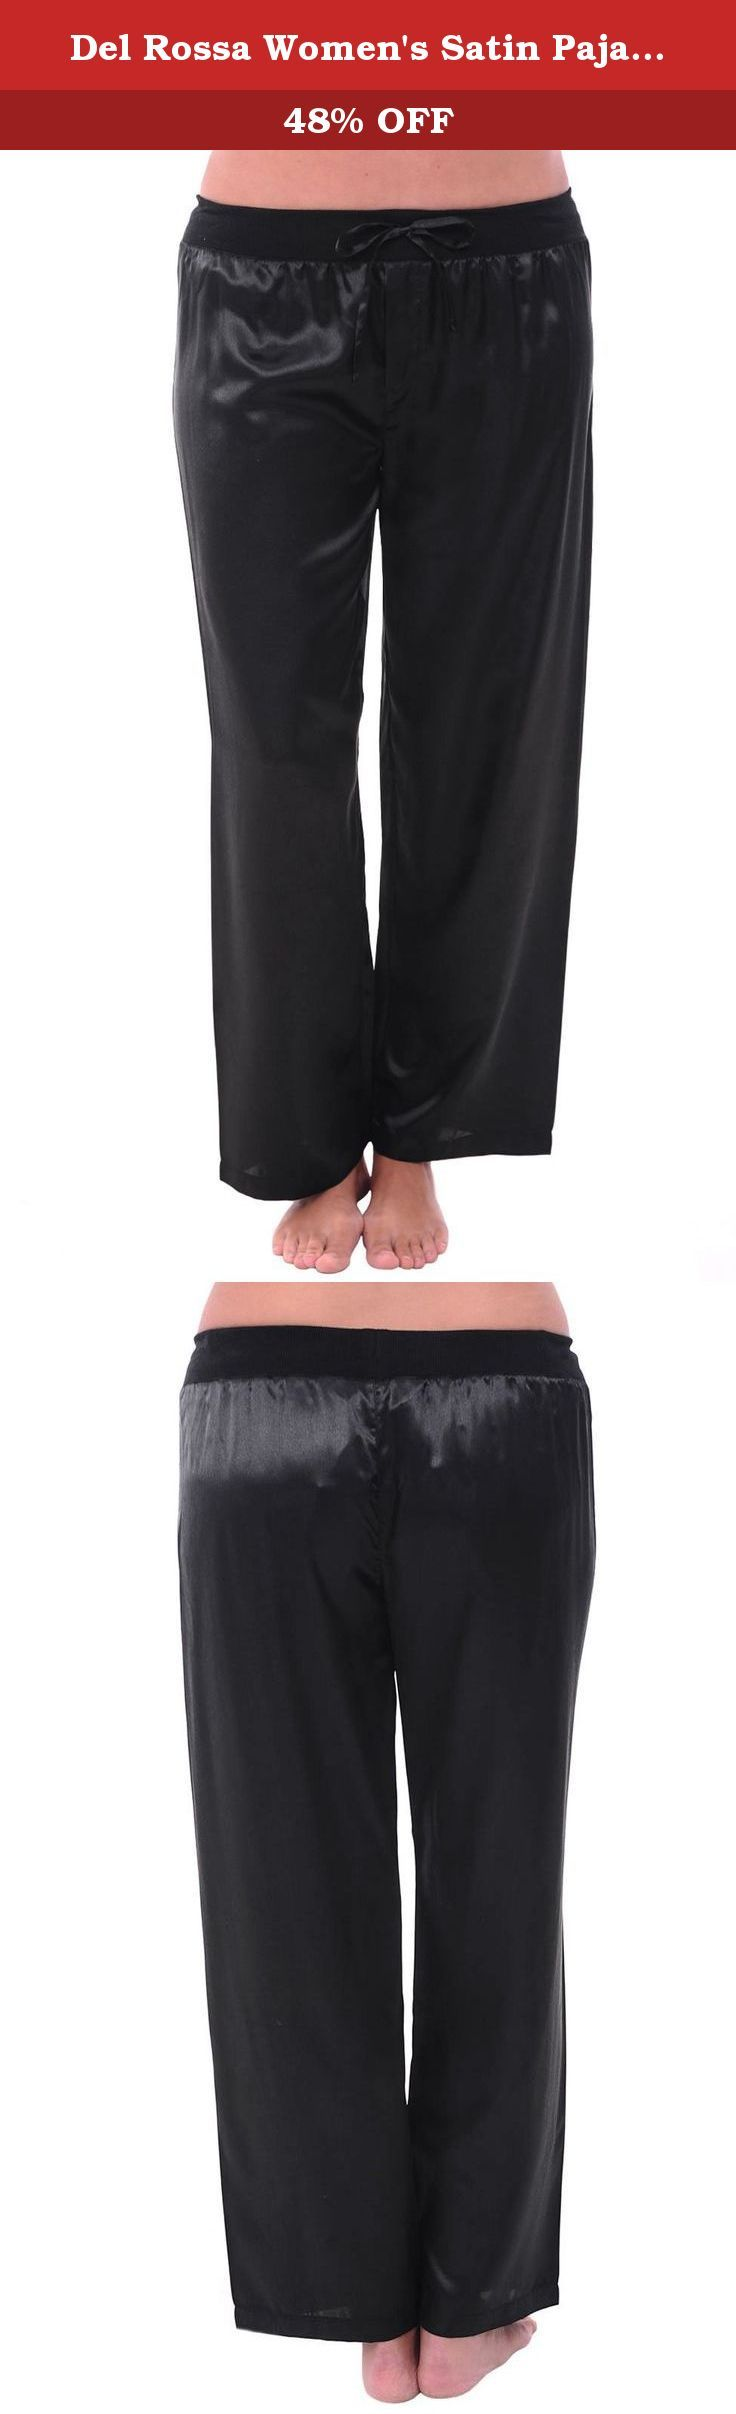 Del Rossa Women's Satin Pajama Pants, Silky Pj Bottoms, Large Black (A0751BLKLG). These women's satin pajama pants from Alexander Del Rossa are comfortable, durable, and classy. Made from premium 100% polyester satin fabric, these women's lounge bottoms are cool and easy on the skin. Designed with you in mind, these classic lounge pants are perfect for lounging around the house - even when guests are present. Rich in features, we trust that these satin pajamas for women will not…